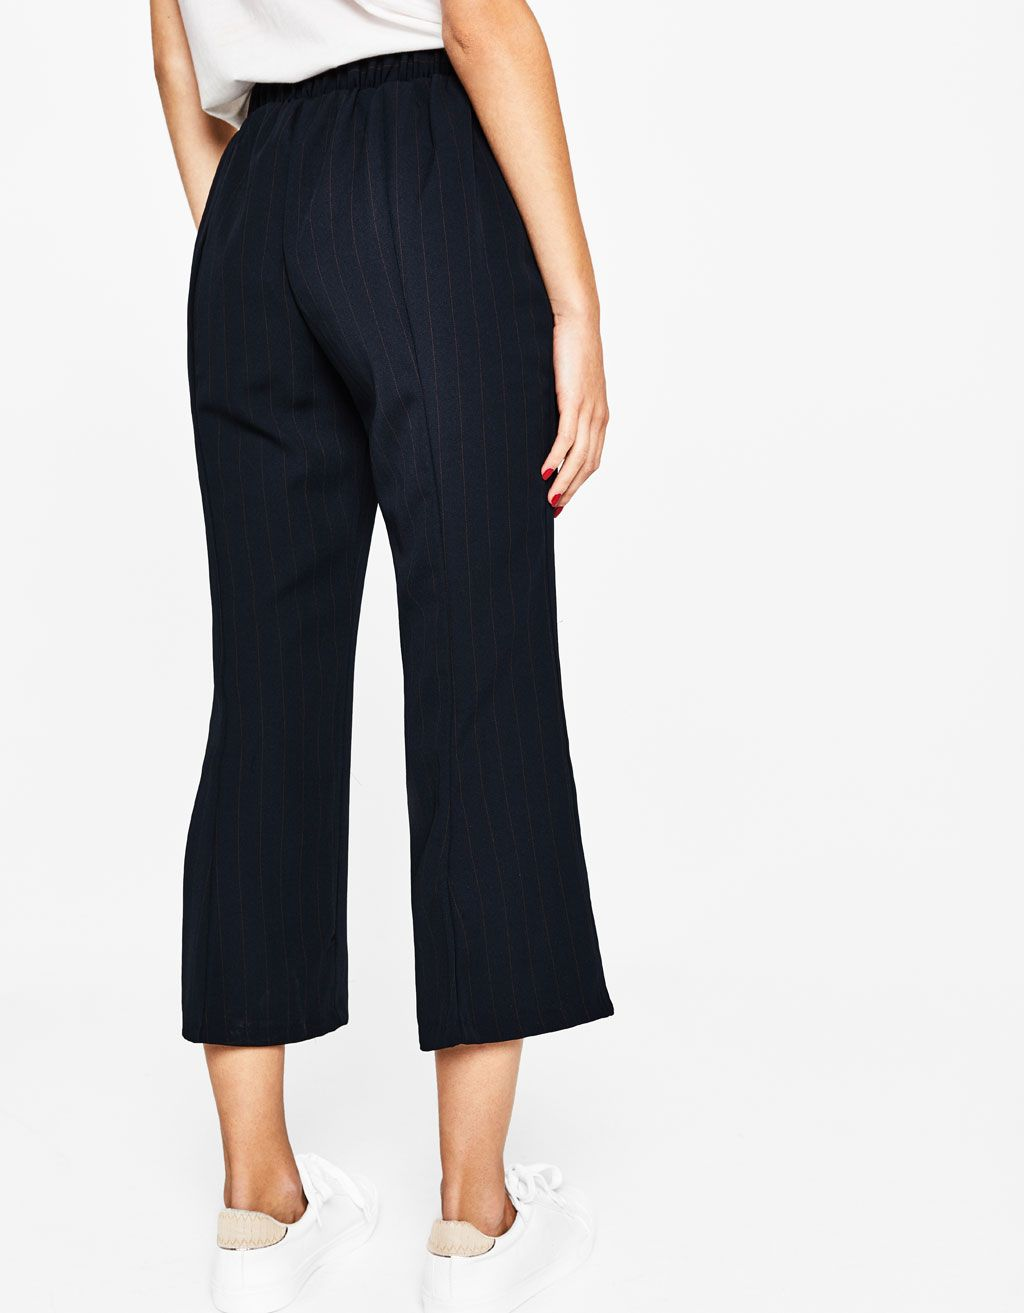 37897a1be1 Cropped wide-leg trousers. Discover this and many more items in Bershka  with new products every week